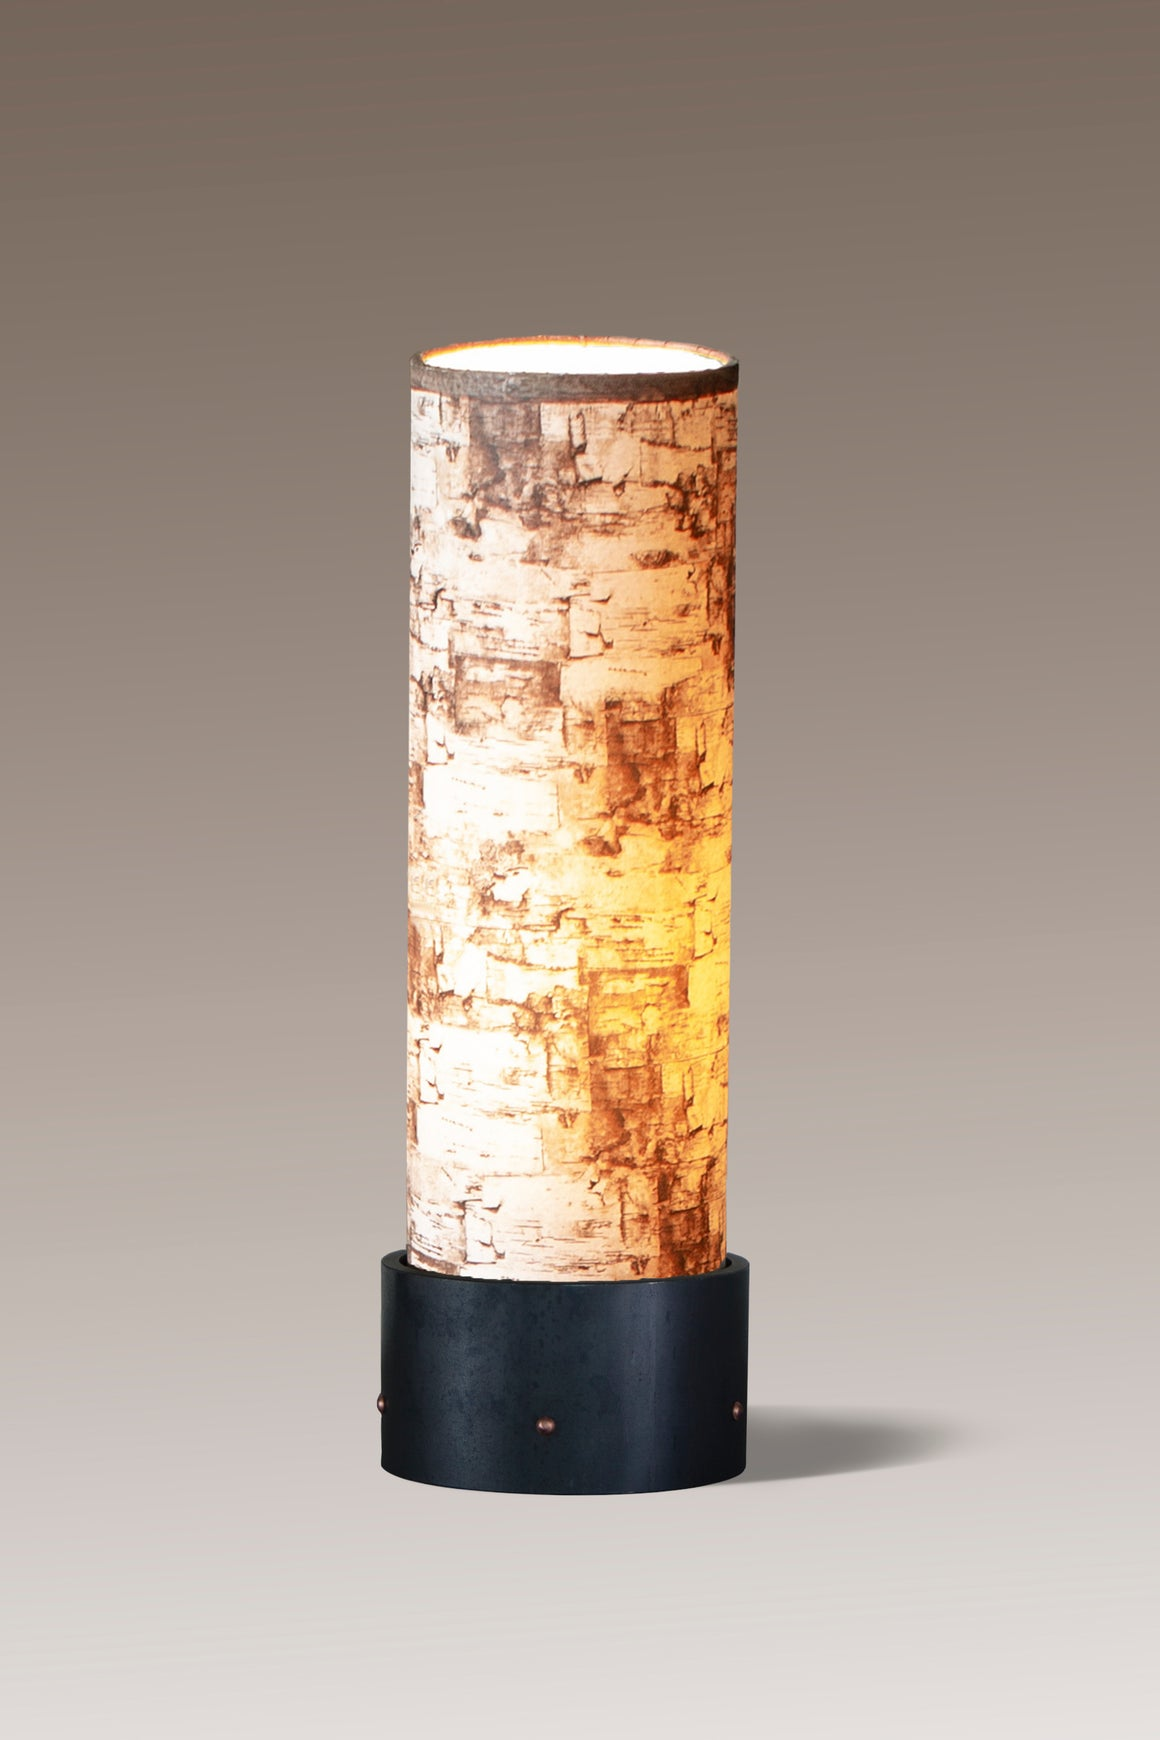 Luminaire Accent Lamp with Birch Bark Shade